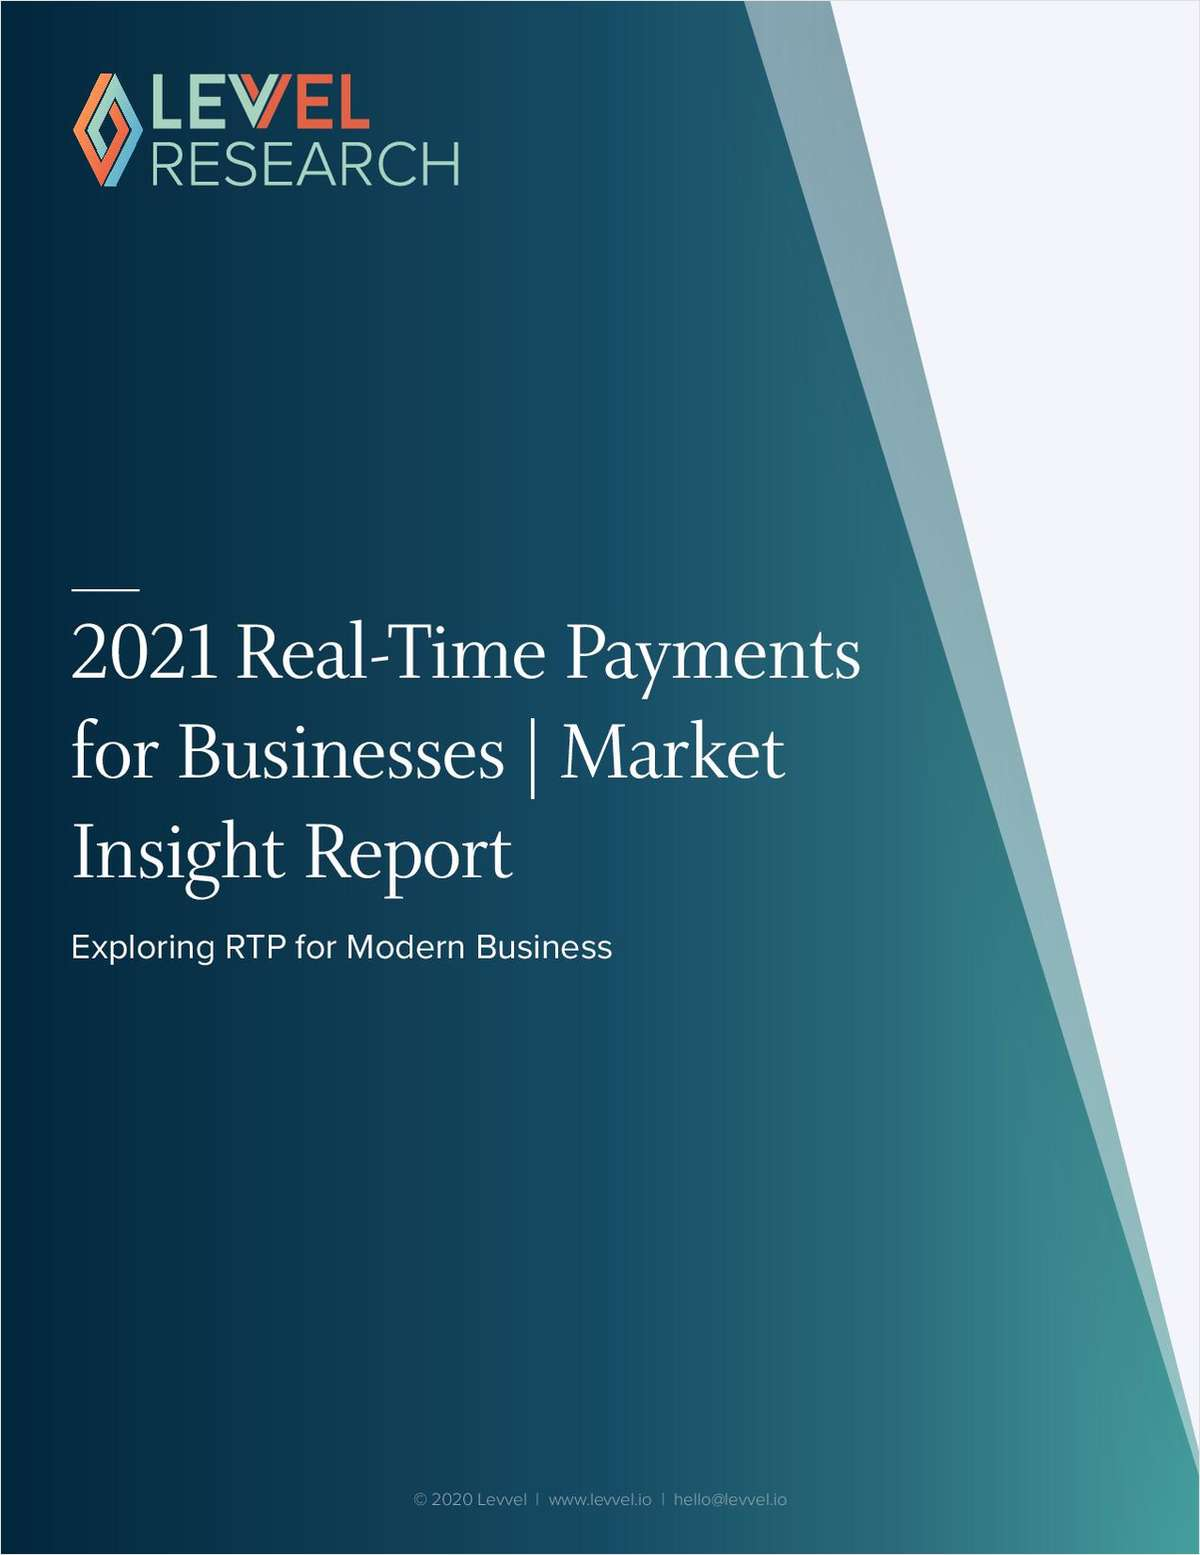 2021 Real-Time Payments Market Insight Report